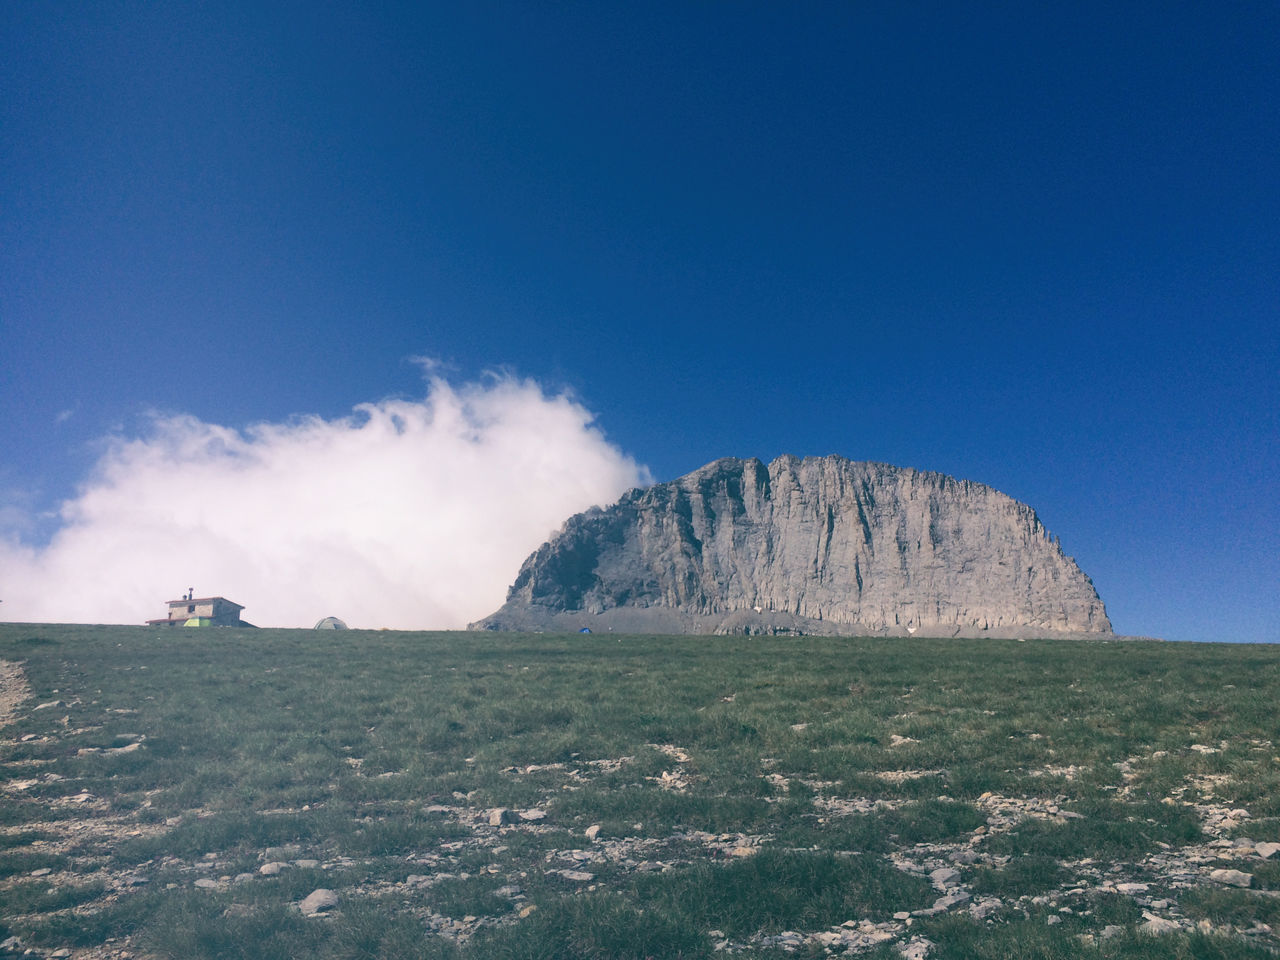 Climbing Cloud EyeEm Nature Lover Landscape Mountain Nature Refuge Rocky Mountains Scenics Sky